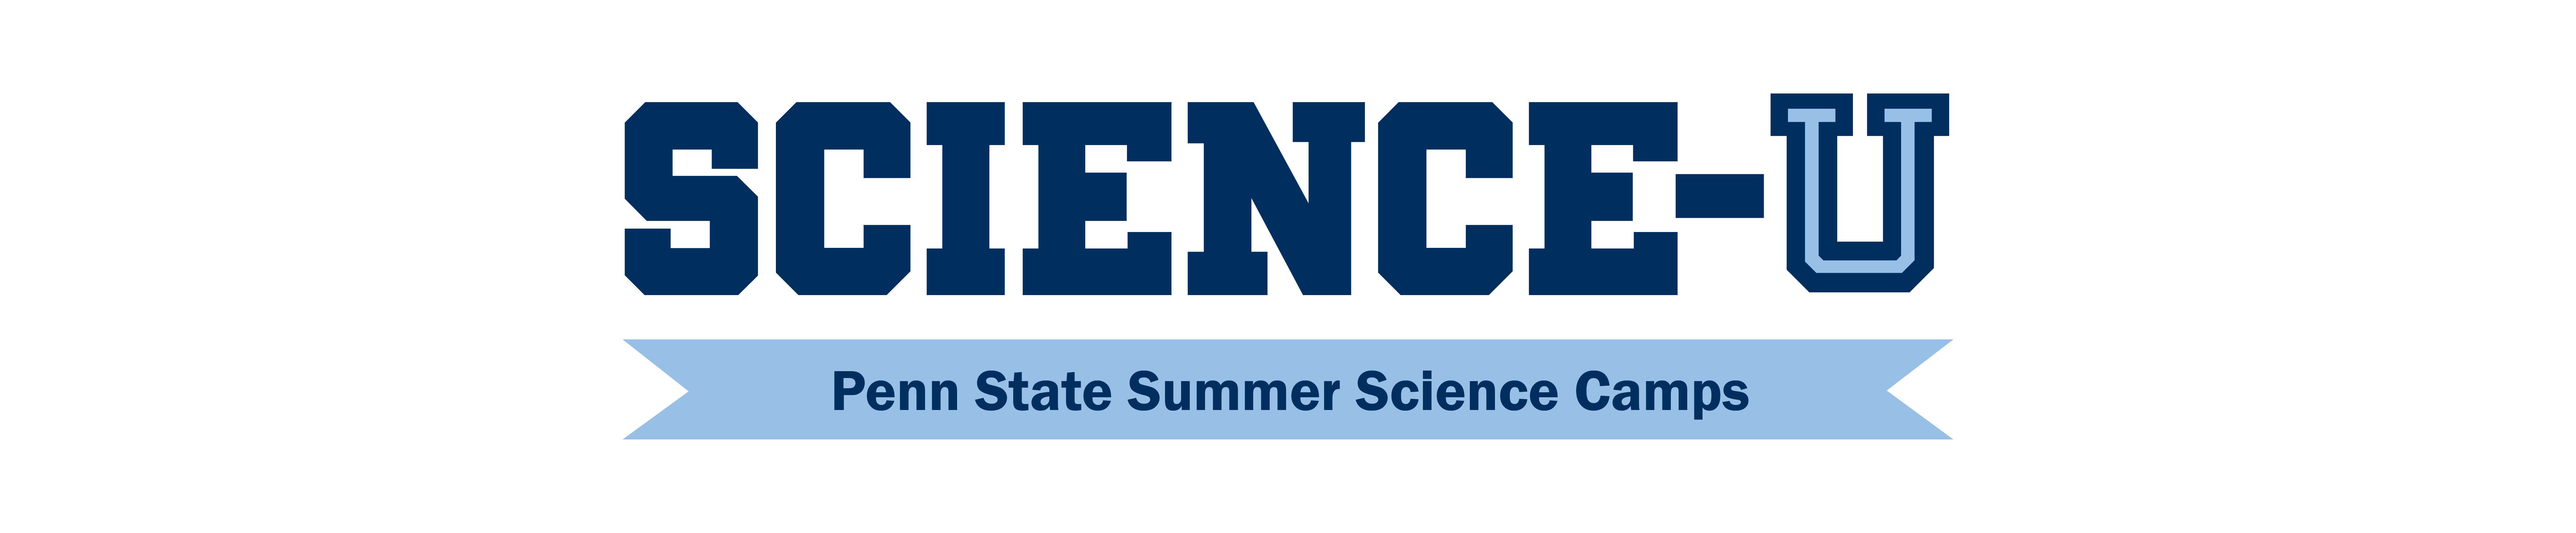 Science-U Penn State Summer Science Camps